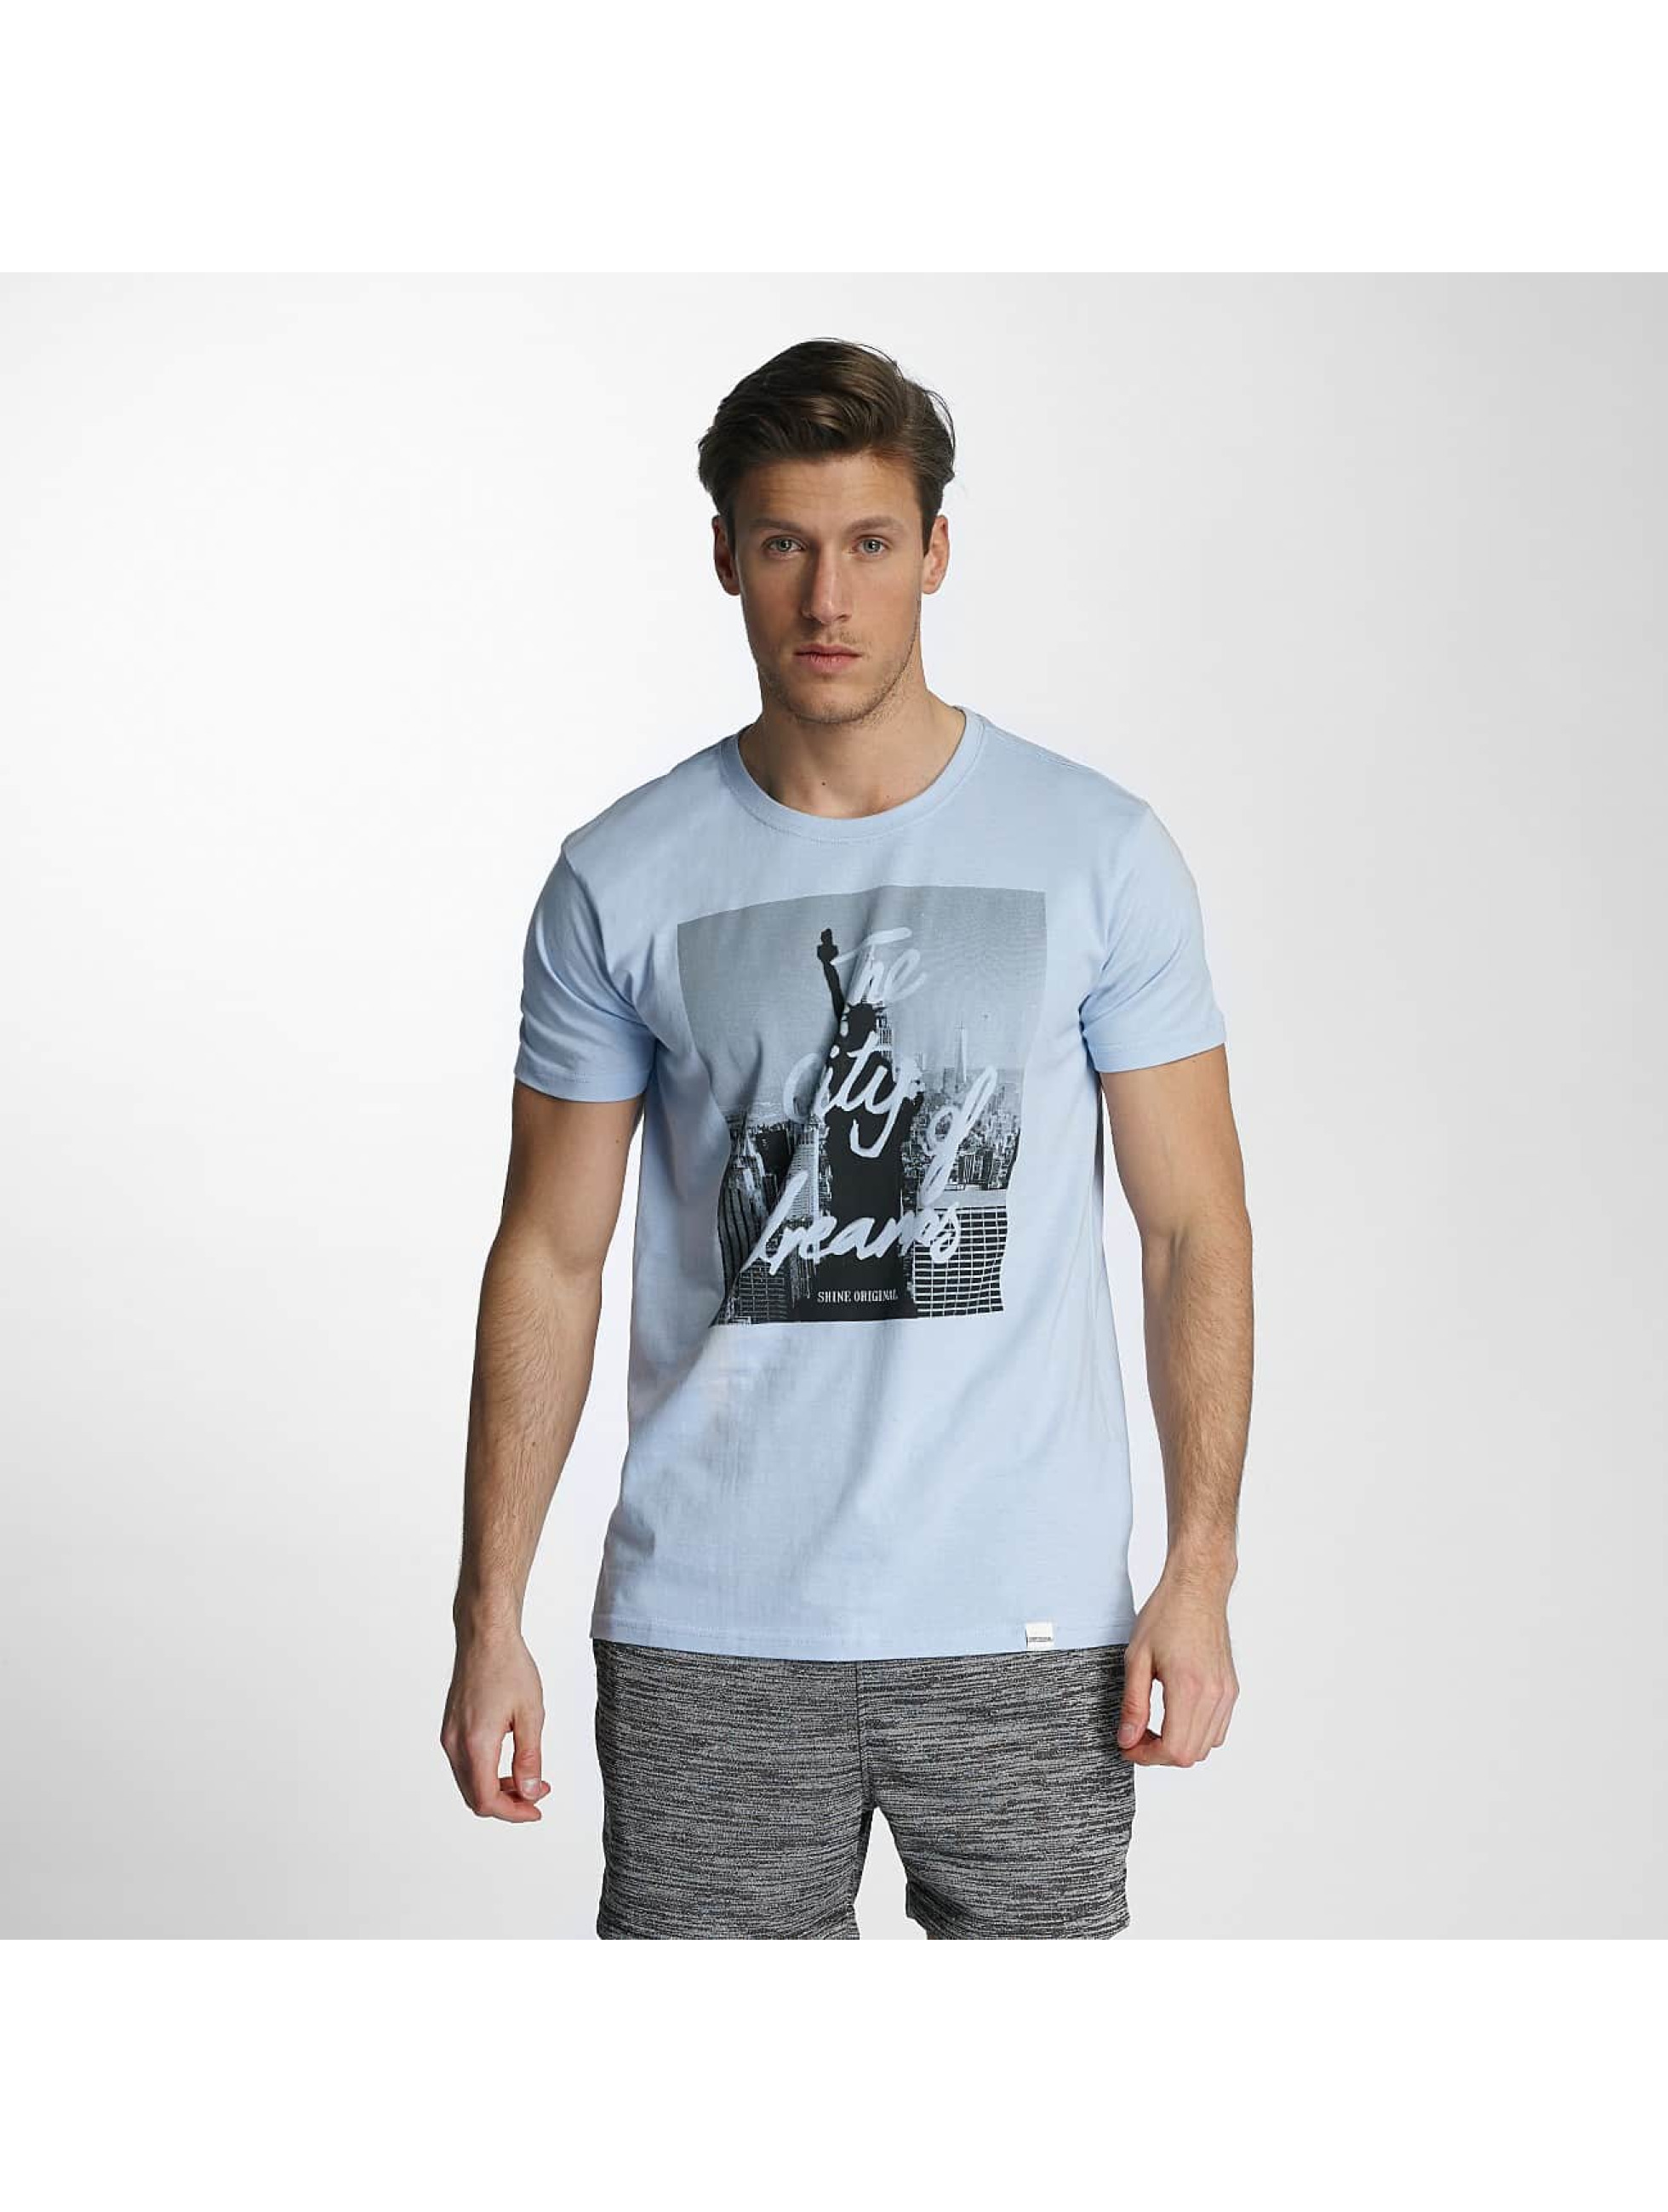 SHINE Original T-Shirt City Lane blue